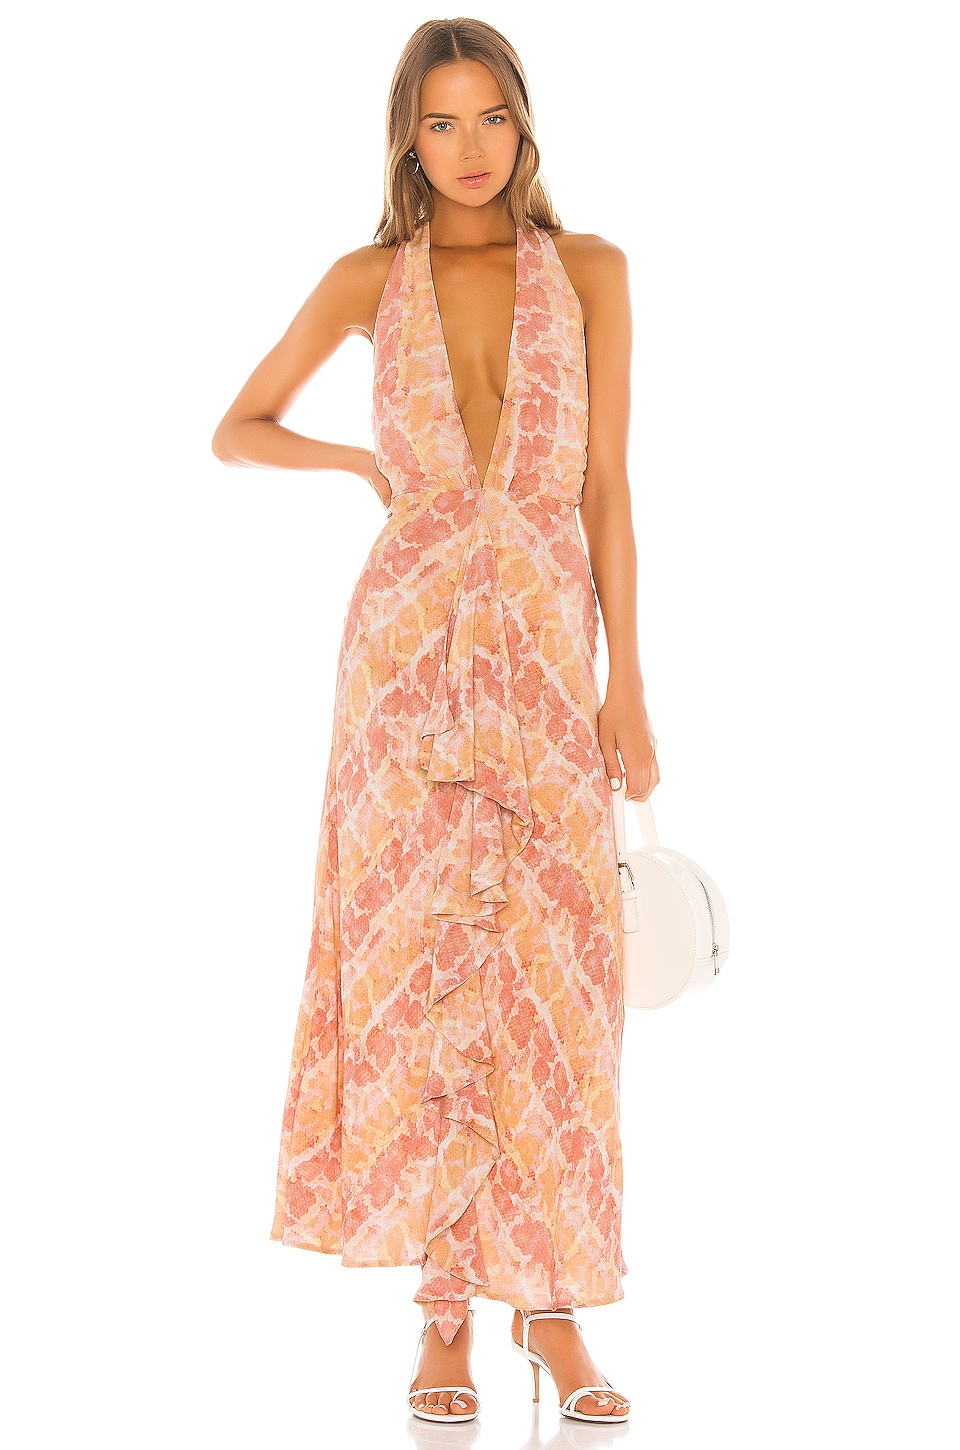 Lovers + Friends Zeta Maxi Dress in Snake Skin